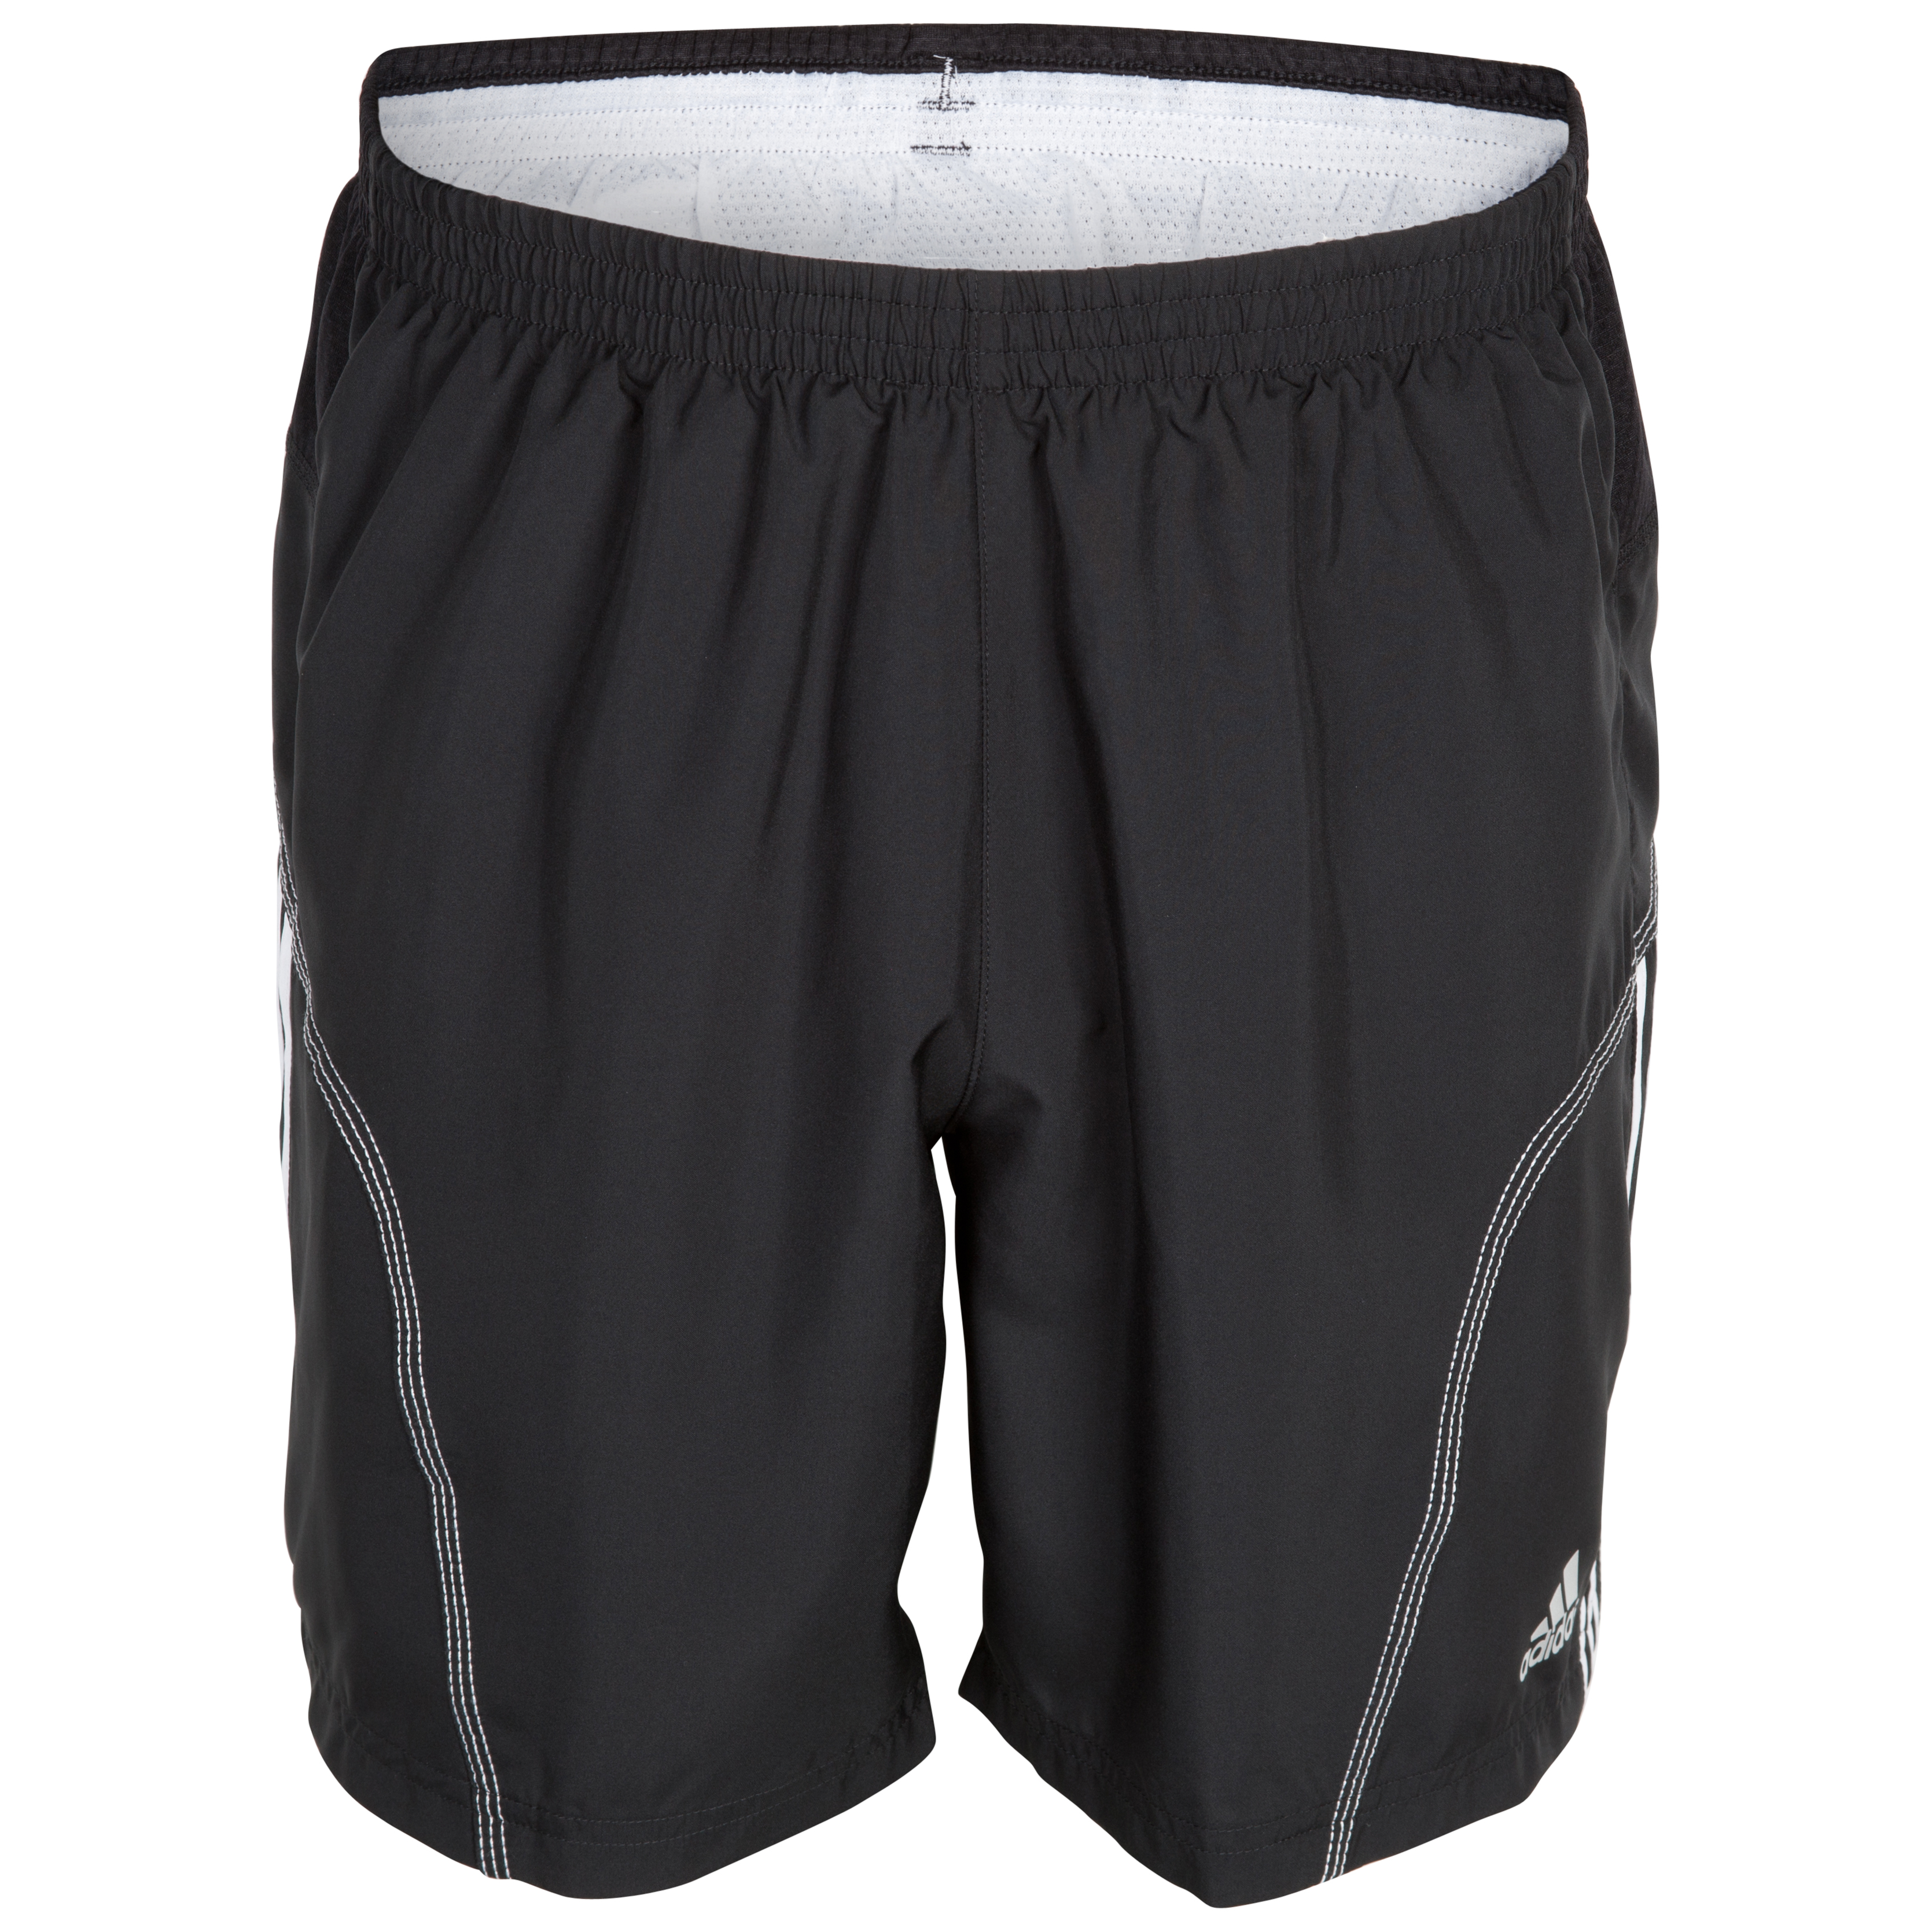 Adidas Response DS 7 Inch Shorts - Black/White